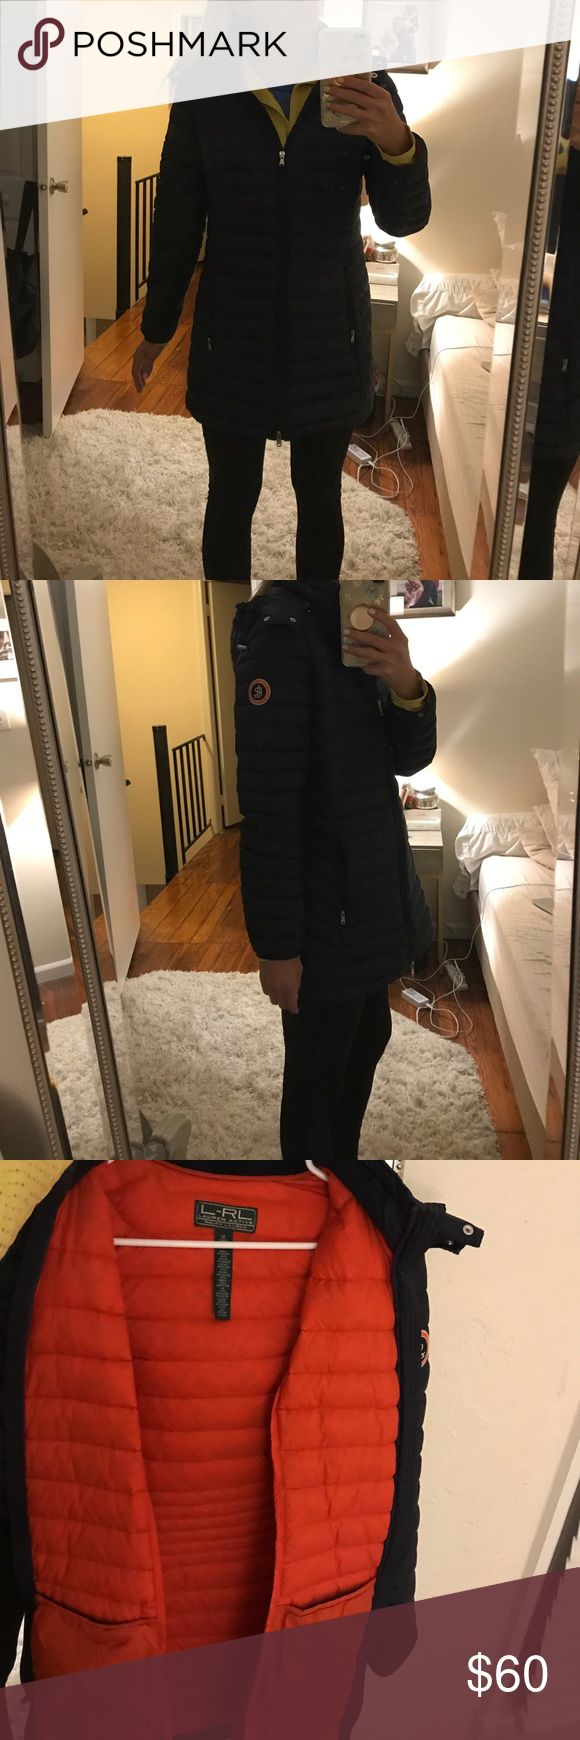 Ralph Lauren winter puffer jacket Navy blue with orange inside, knee length puffer jacket (I'm 5'8 so that's why it looks short) has detail on side that looks like Canada goose Ralph Lauren Jackets & Coats Puffers